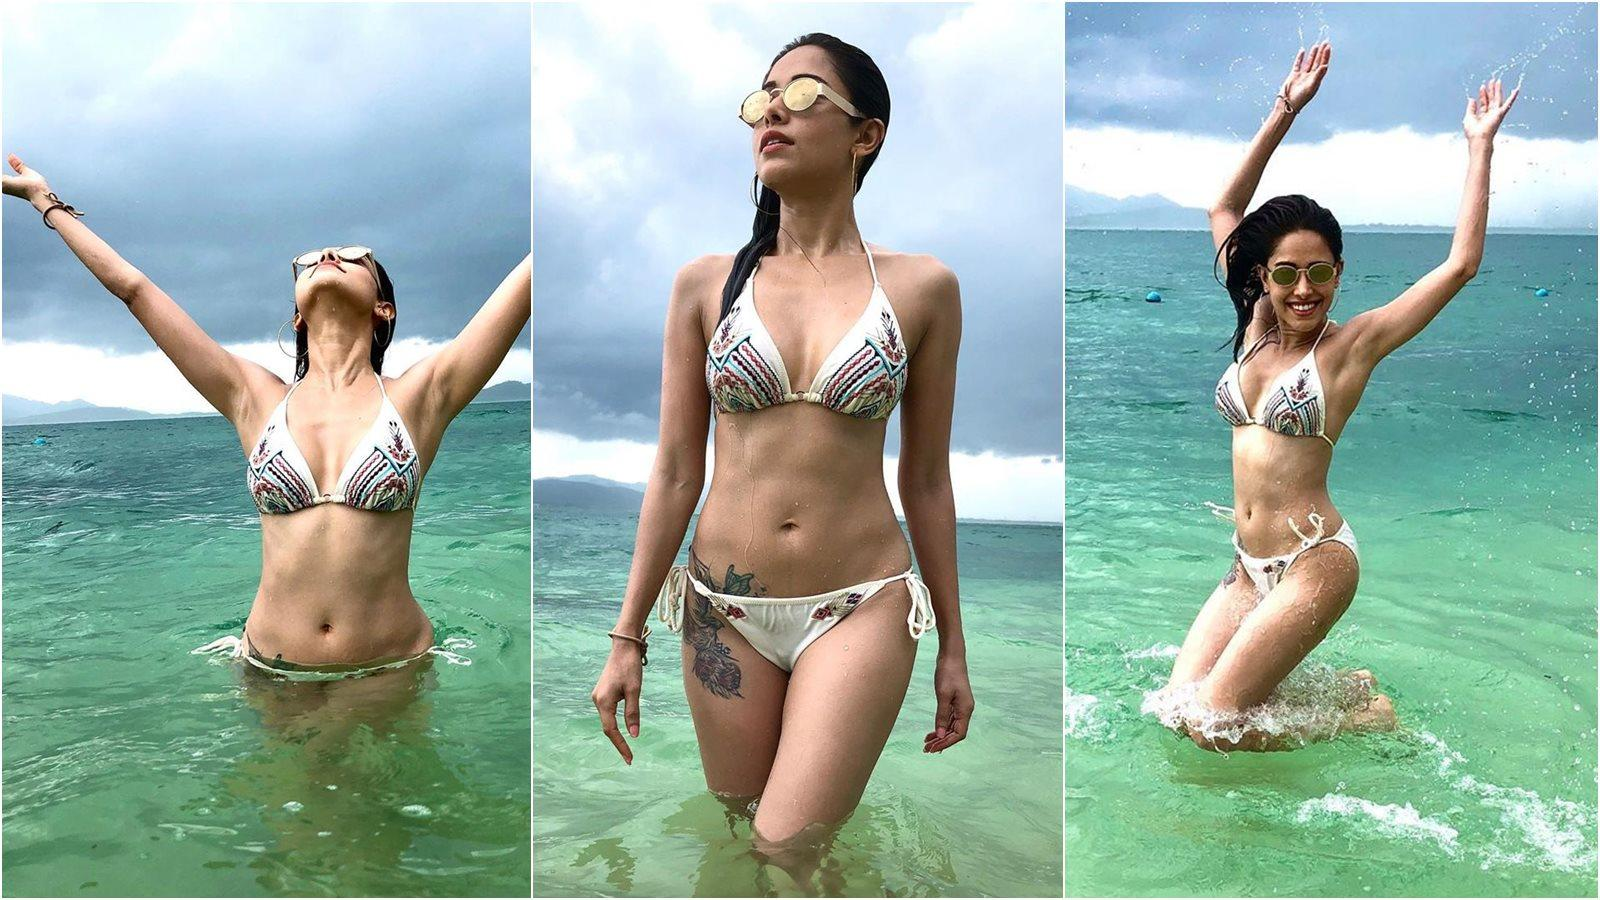 Nushrat Bharucha sets temperatures soaring as she posts latest bikini-clad pictures from Thailand